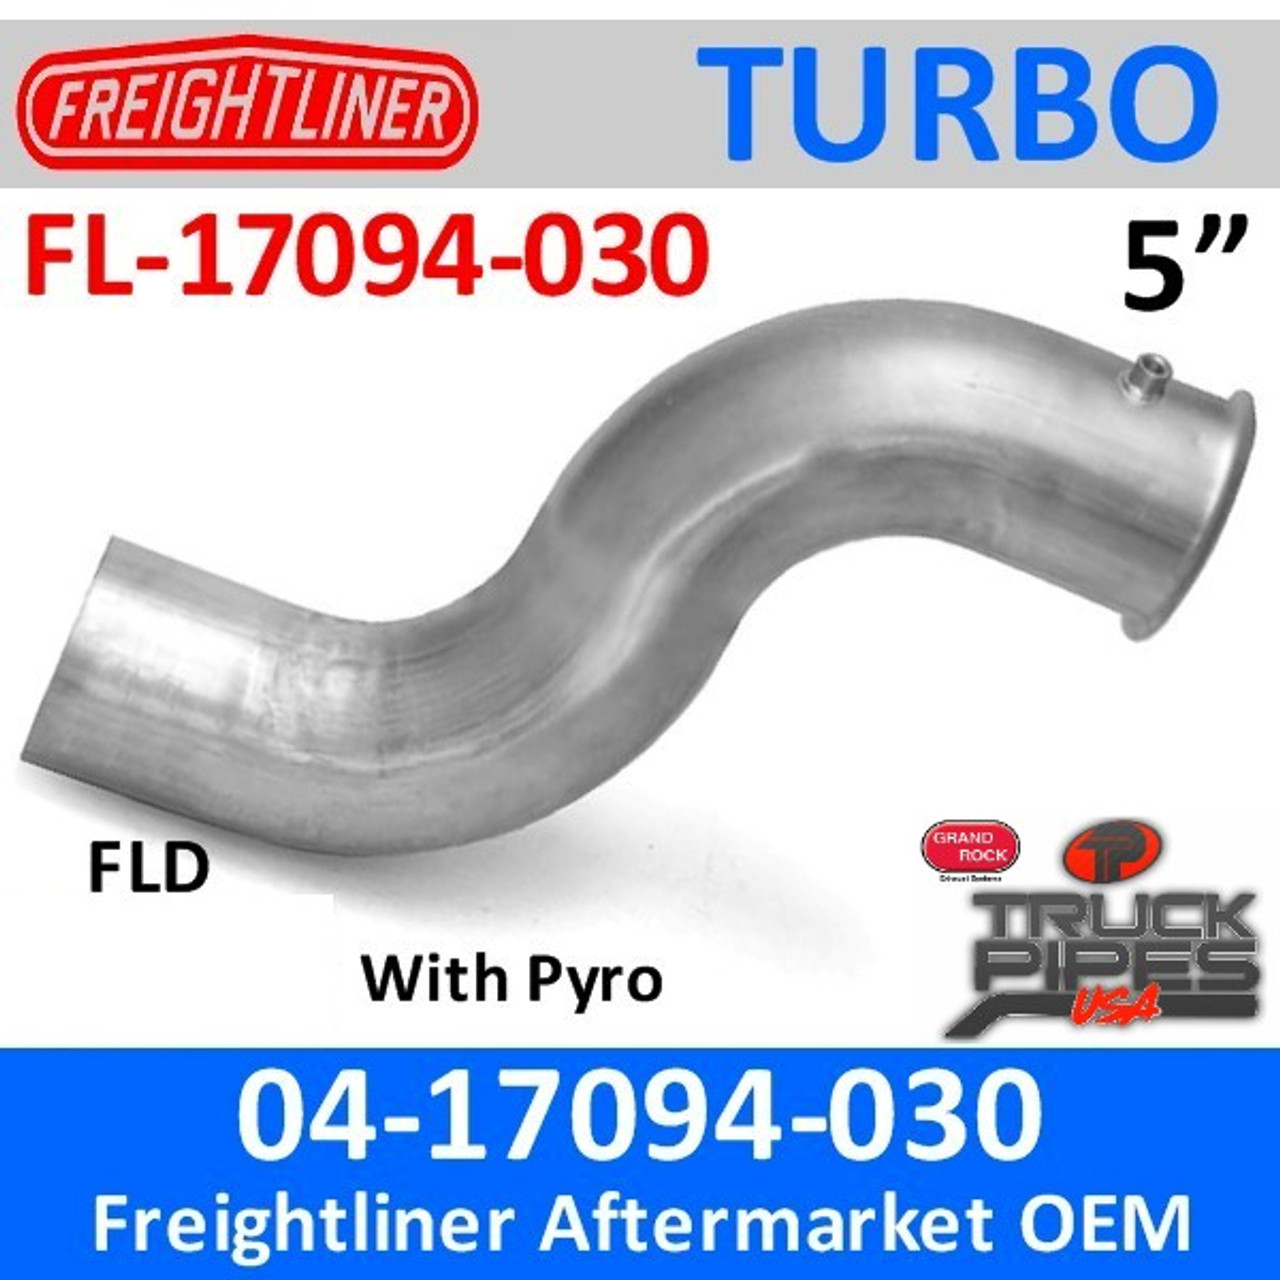 04-17094-030 Freightliner Turbo Exhaust Pipe with Pyro FL-17094-030